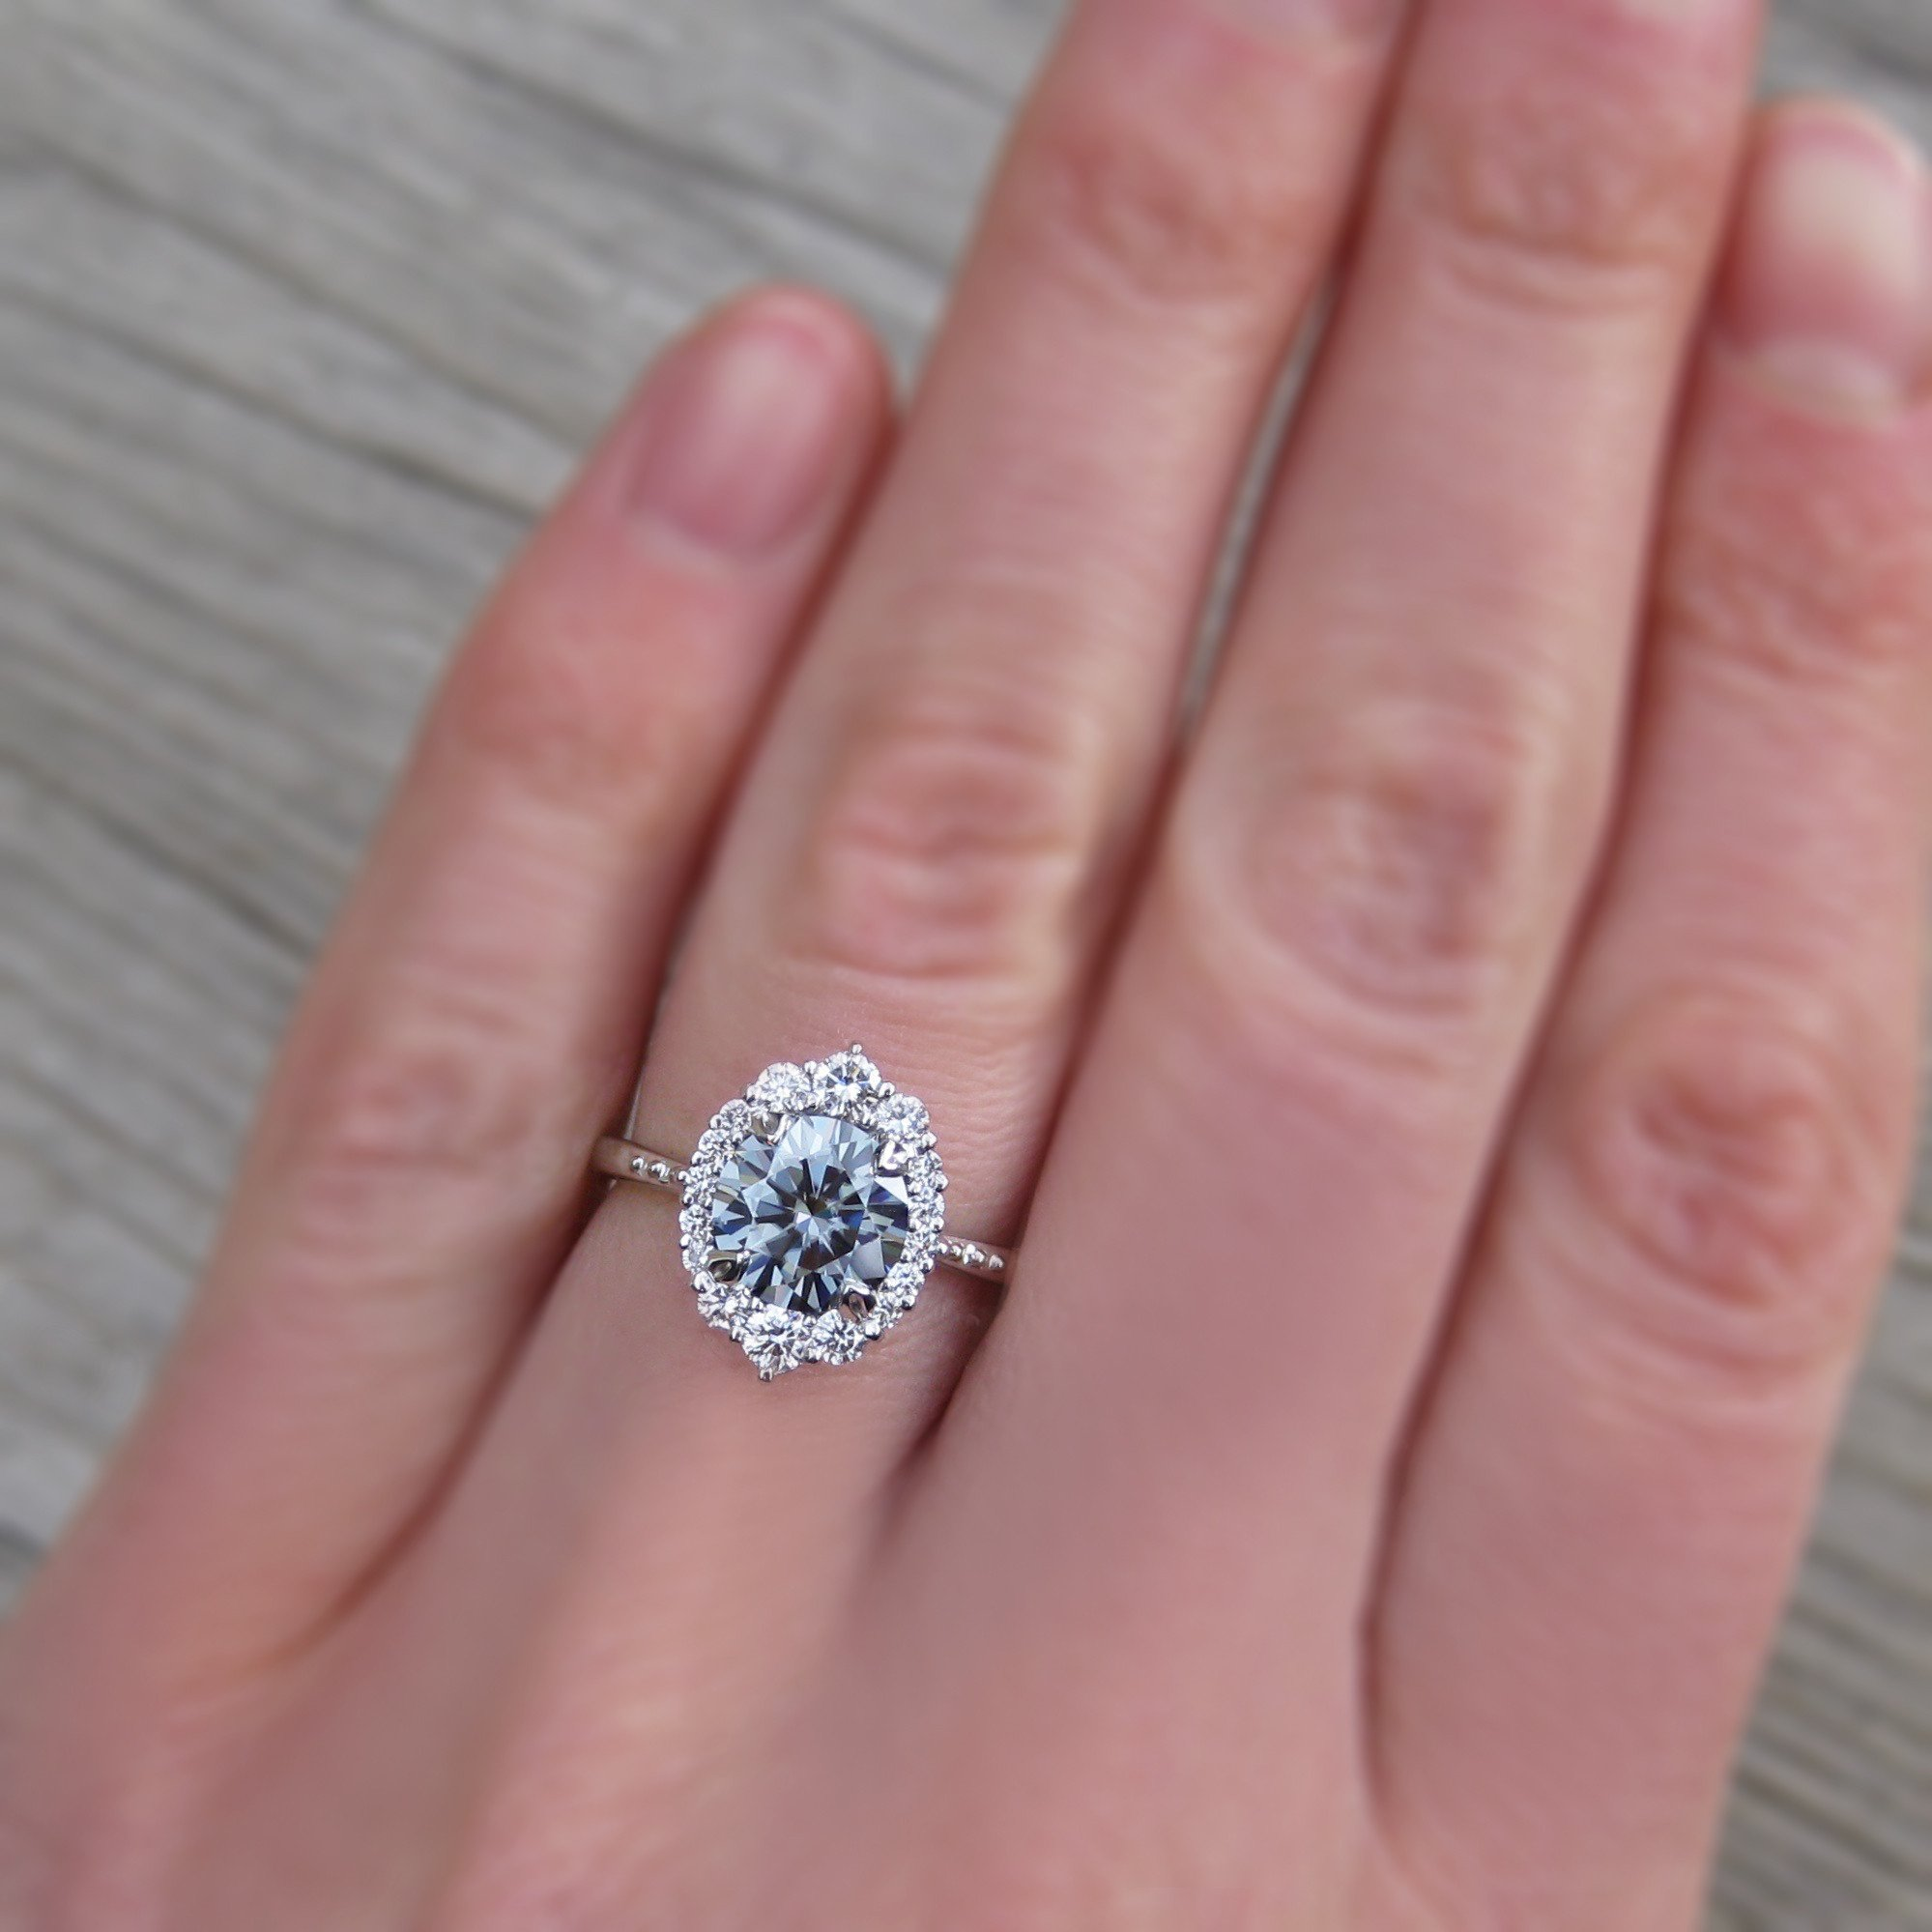 EMERSON・Dark Grey Moissanite, Diamond Halo (1.58ct) | Wedding Ideas ...